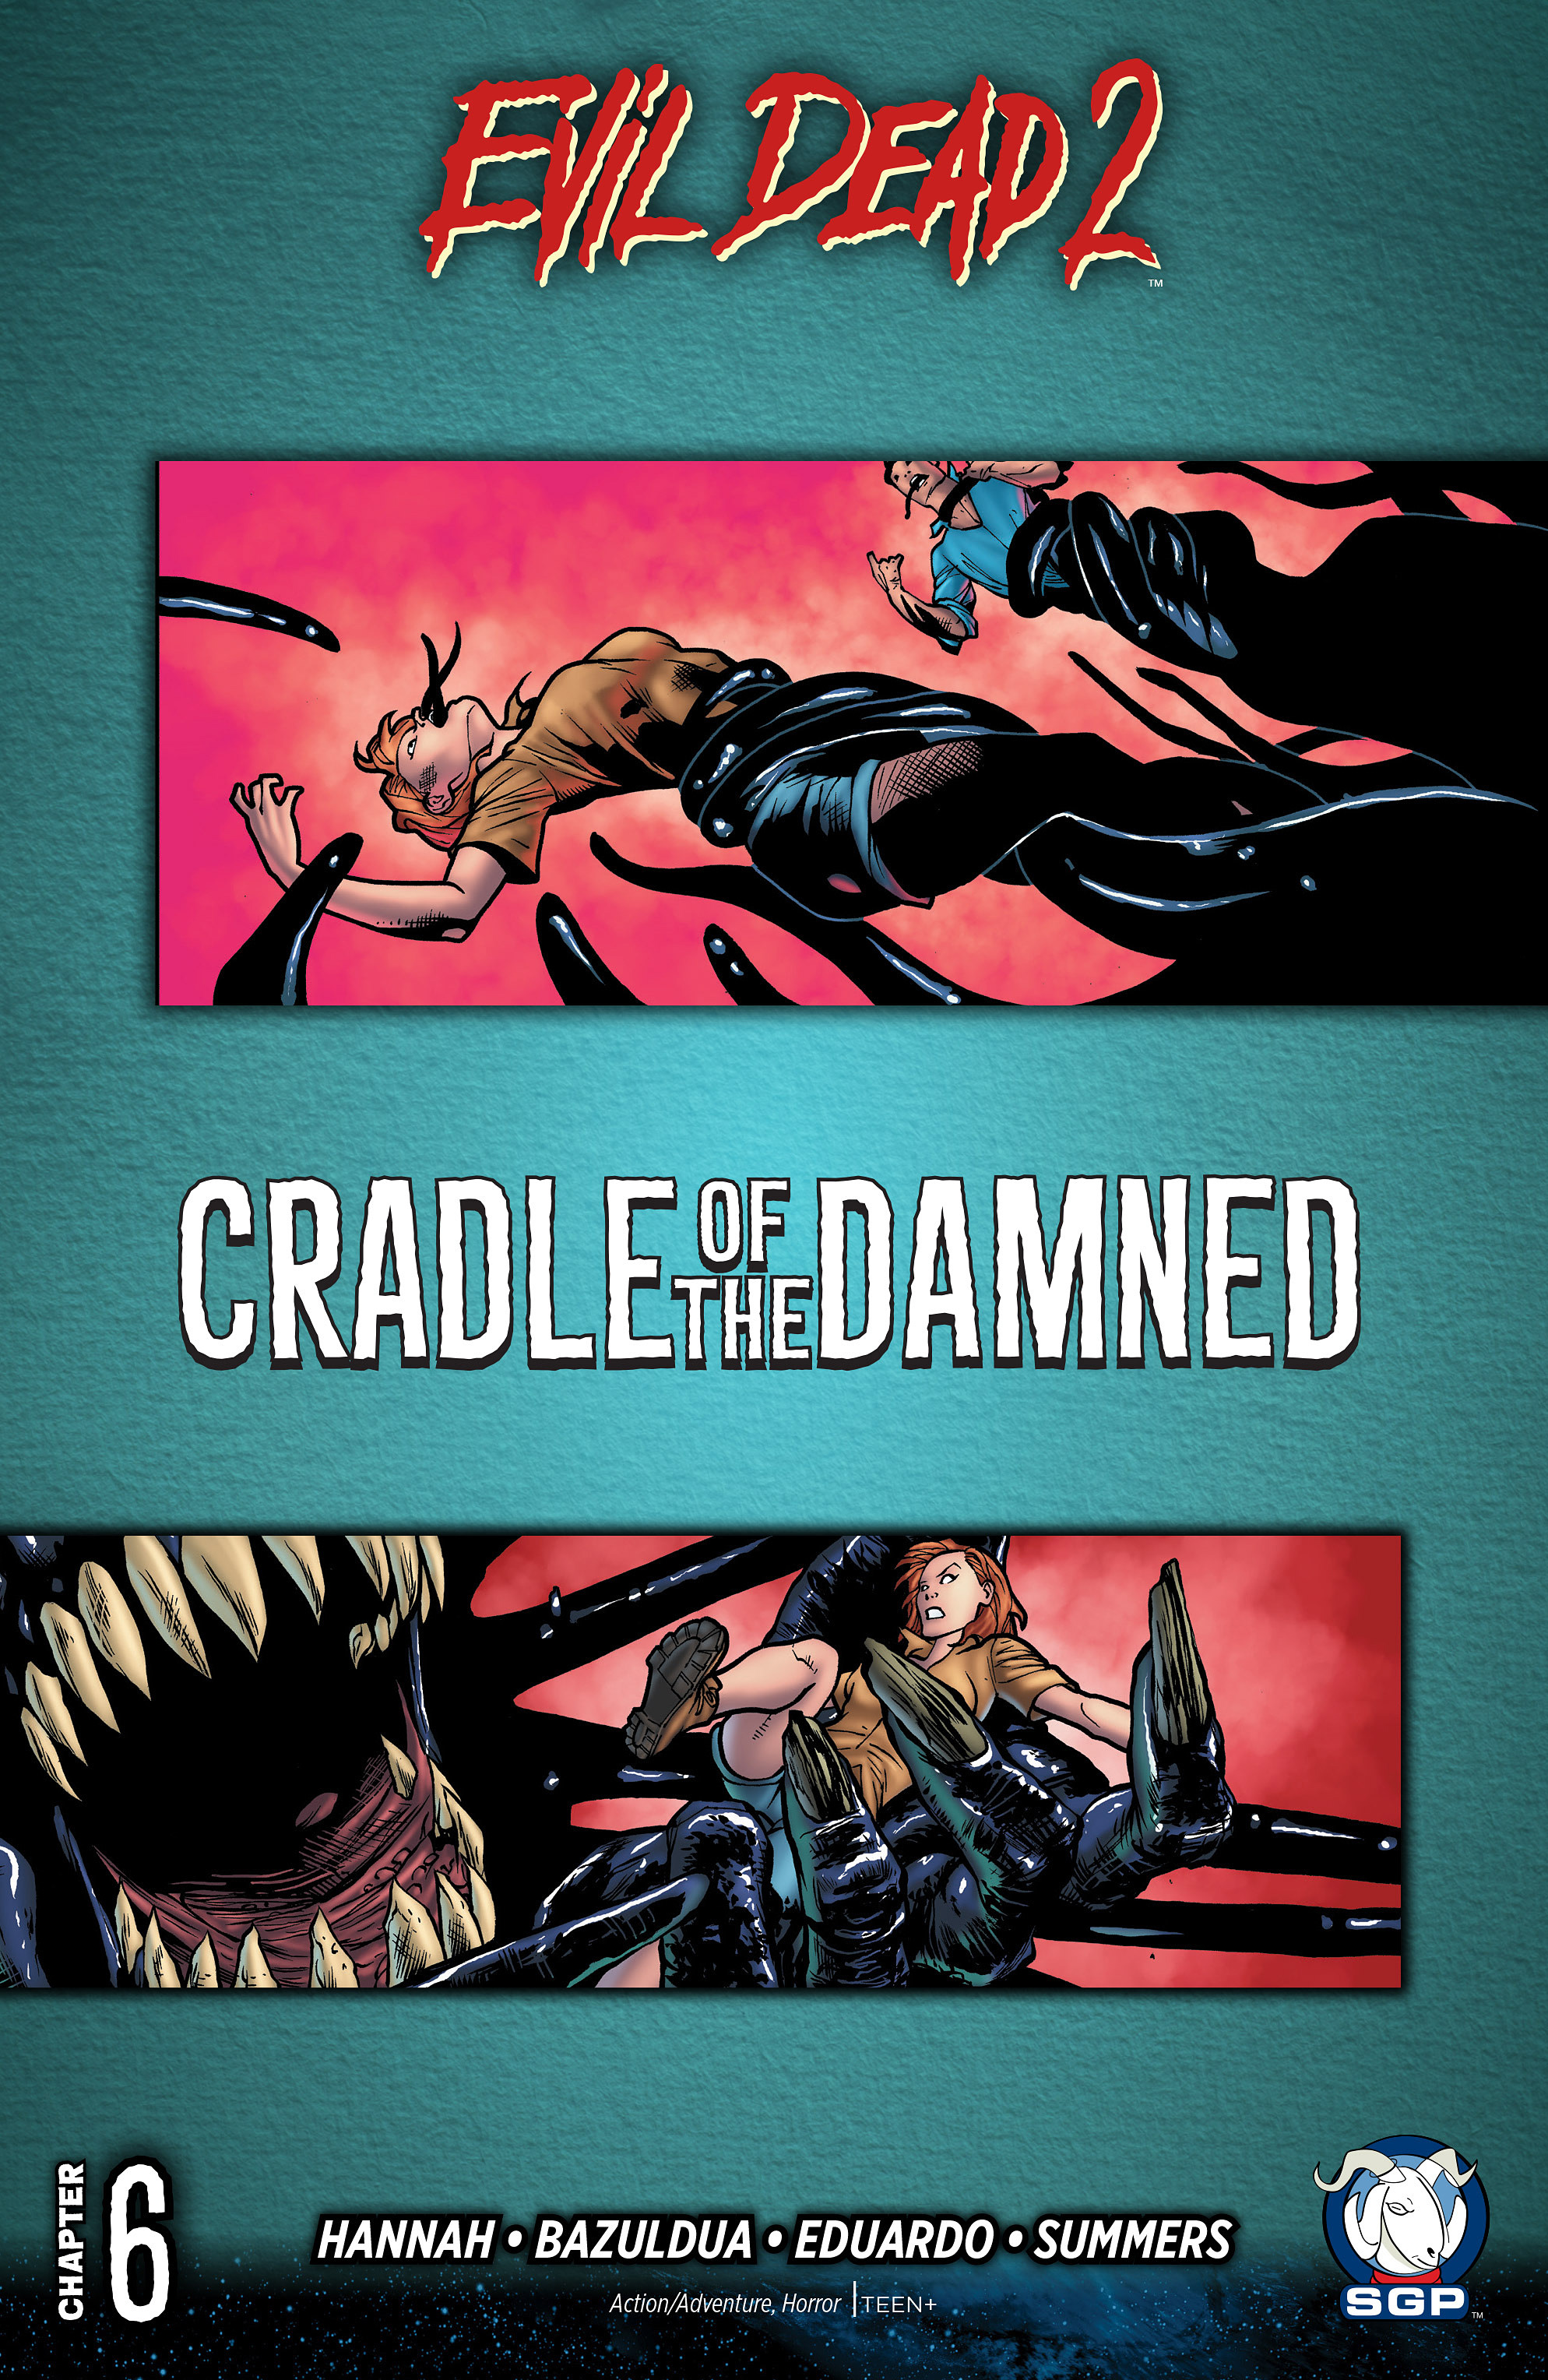 Read online Evil Dead 2: Cradle of the Damned comic -  Issue #6 - 1